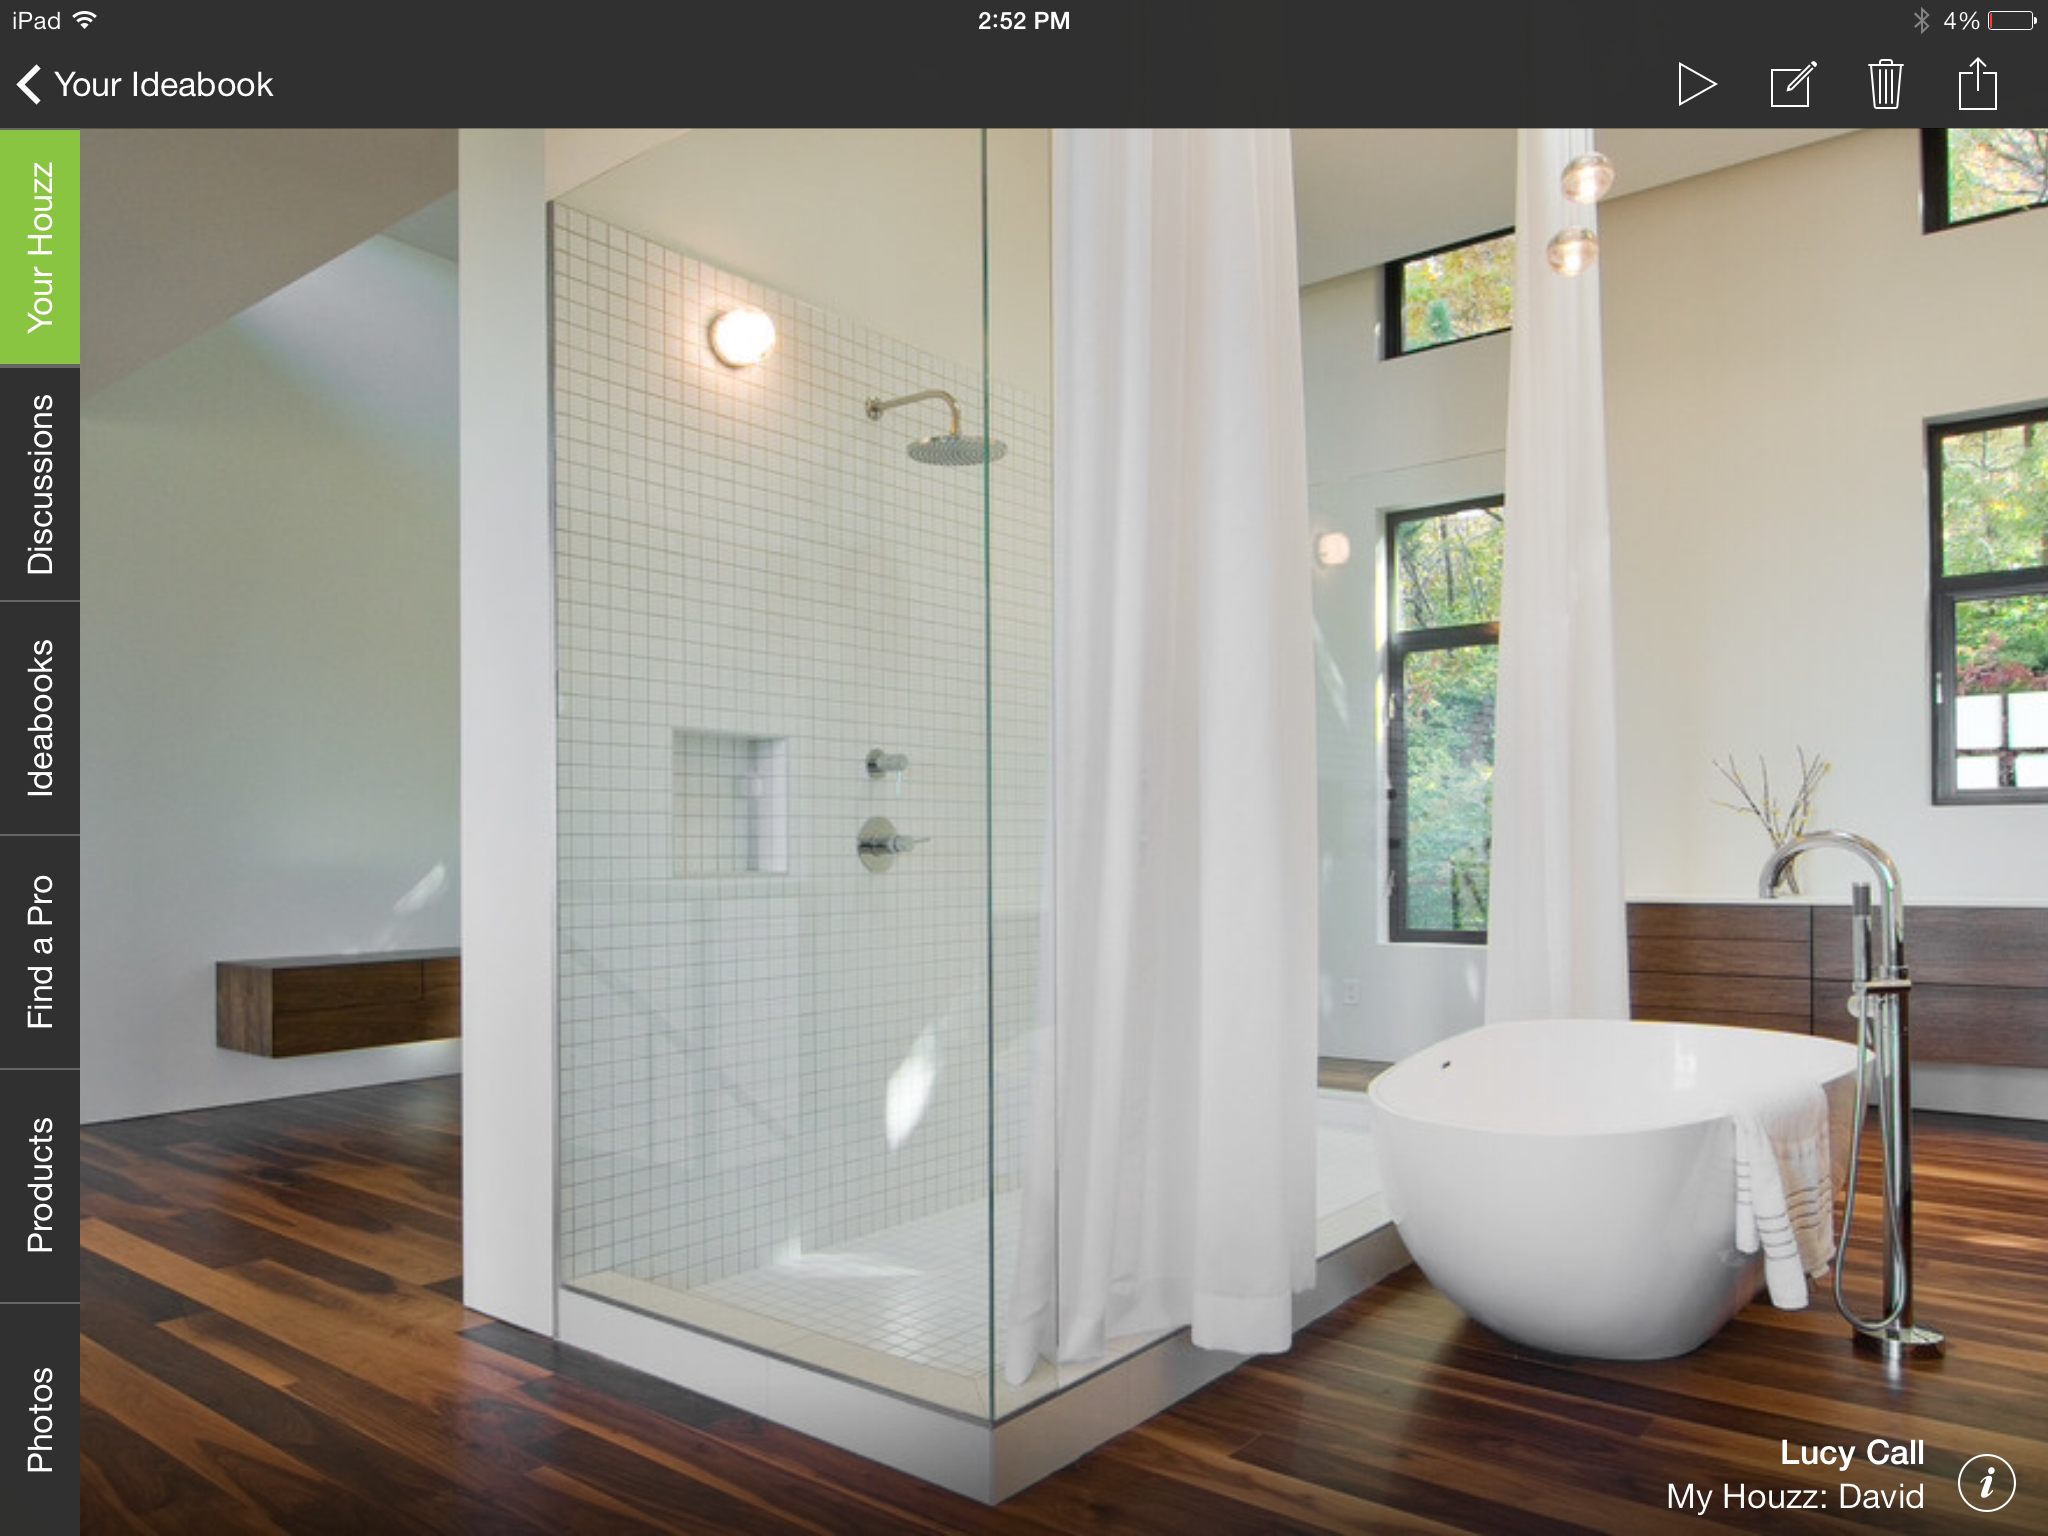 Dream Bathrooms Trends Fewer Tubs More Walls Around